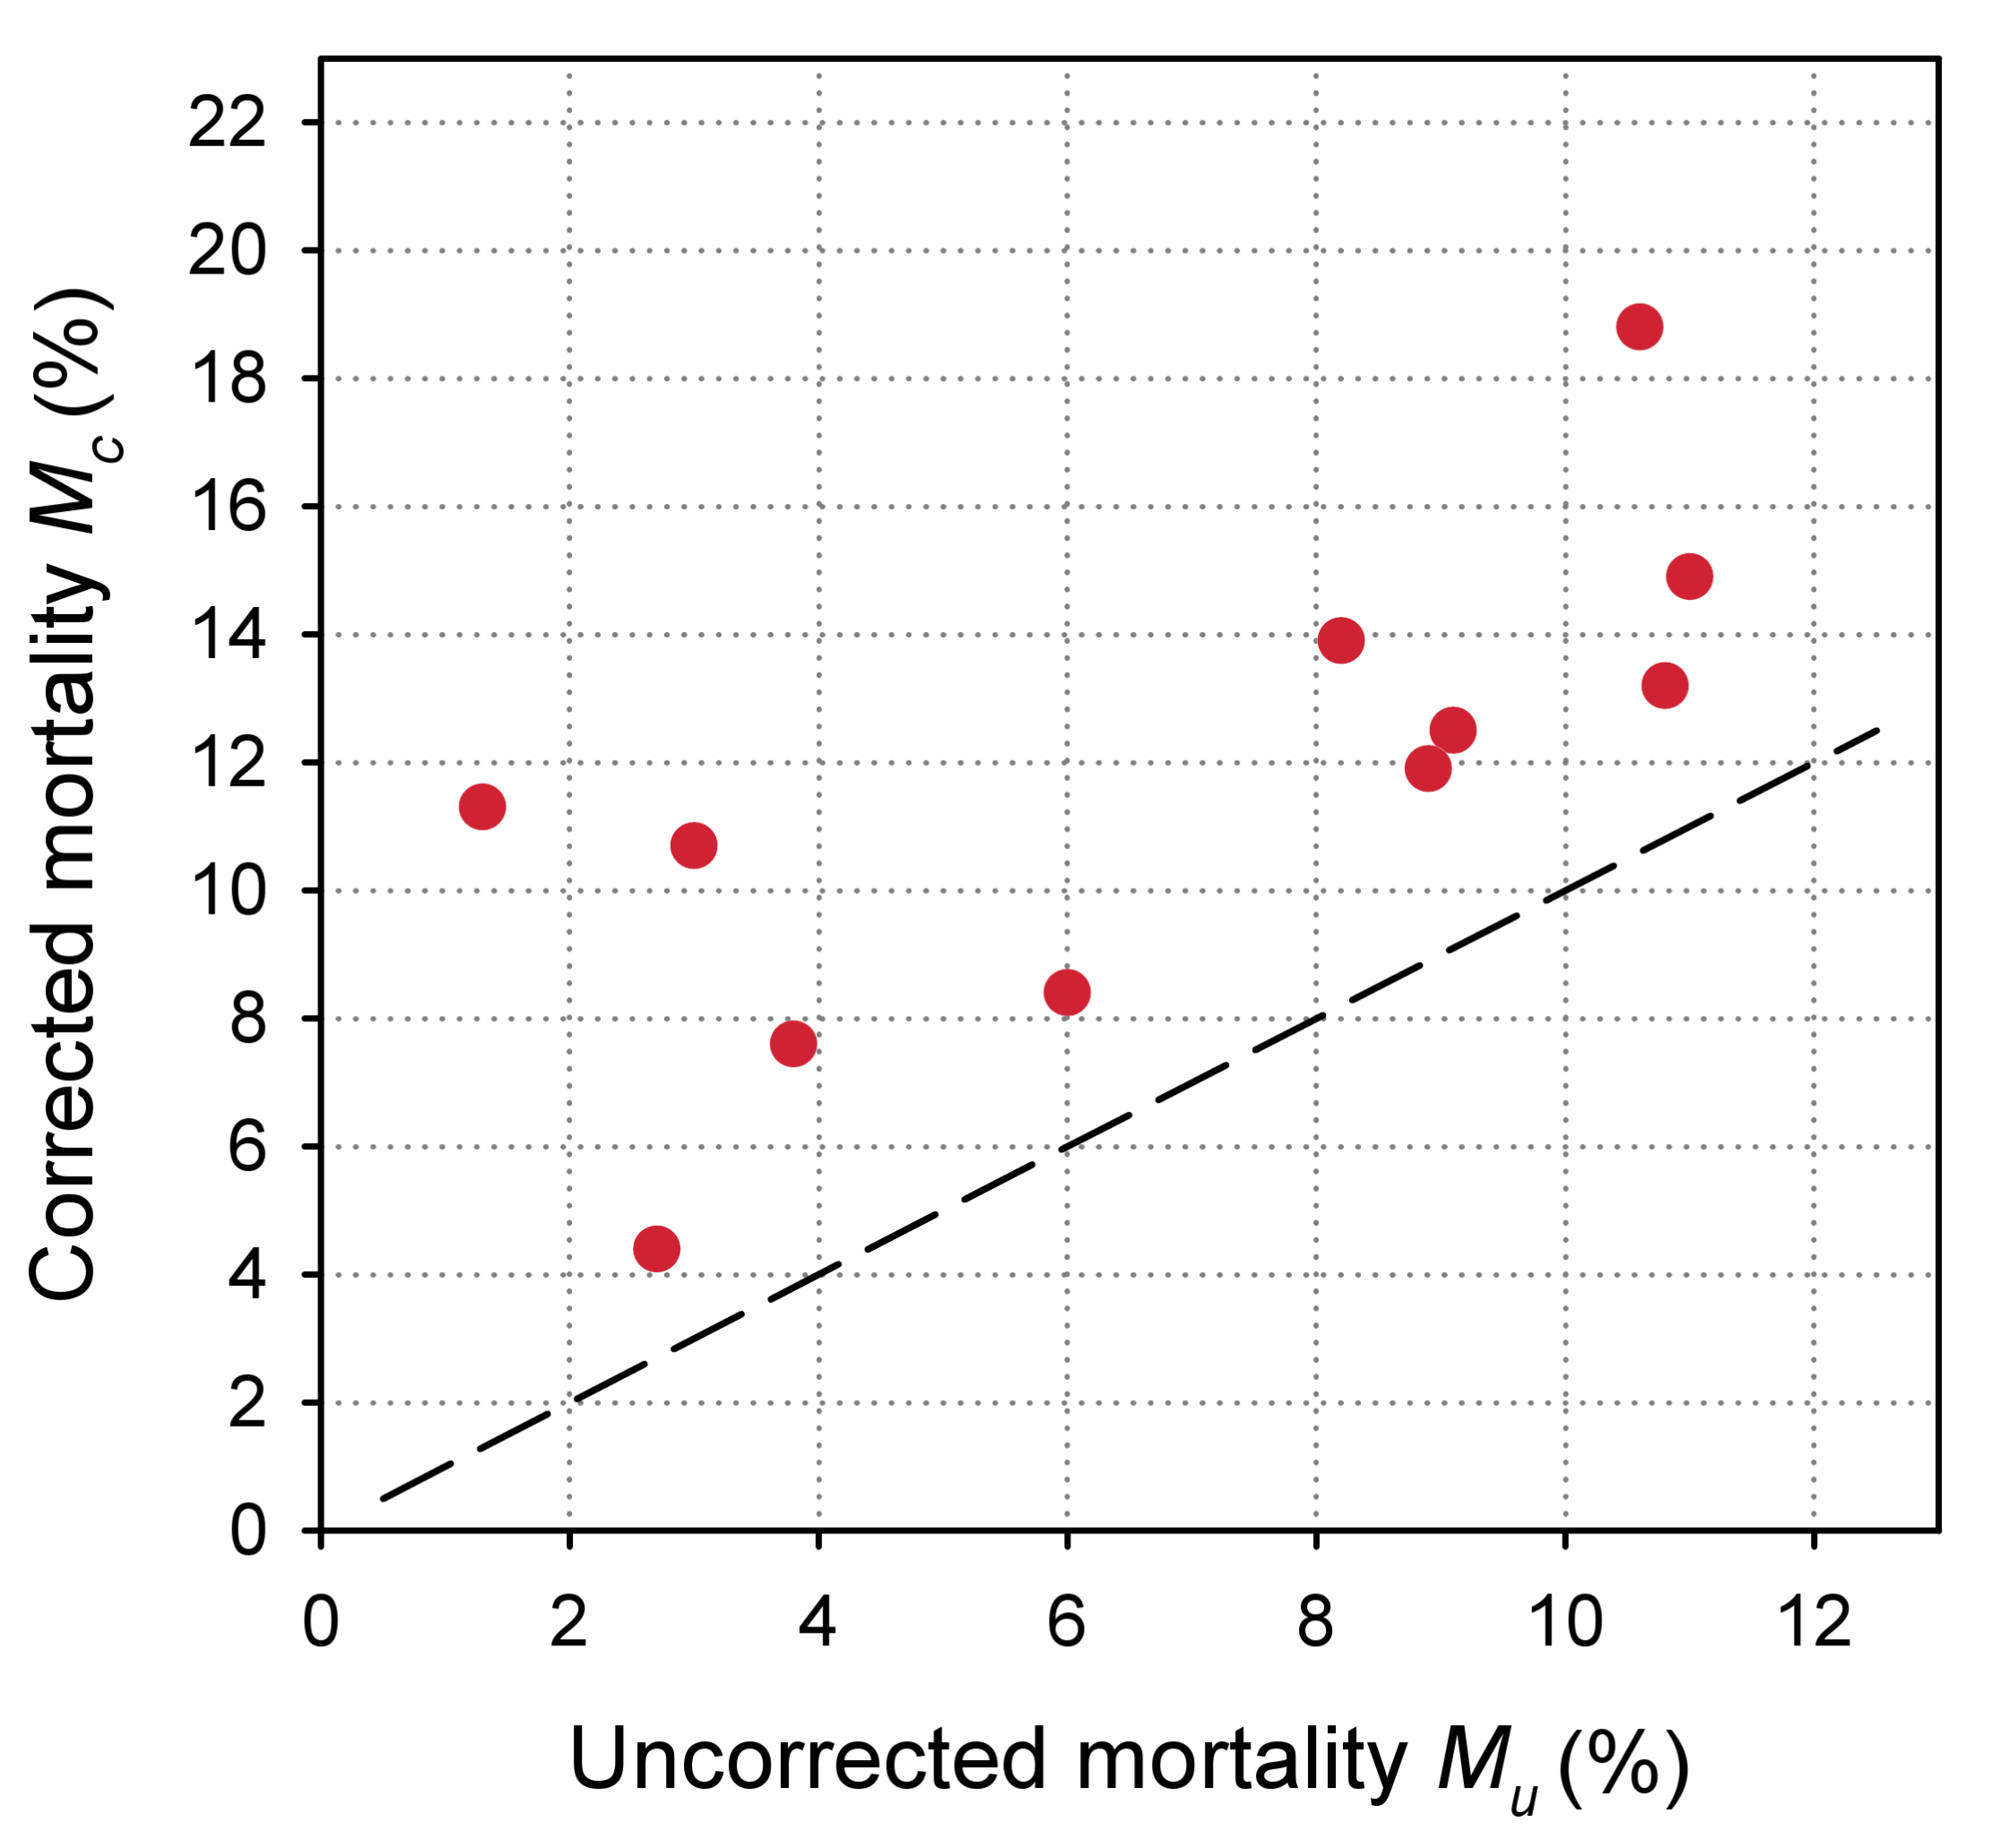 Scatterplot of uncorrected versus corrected mortality for loss to follow-up in 11 treatment programmes in sub-Saharan Africa.